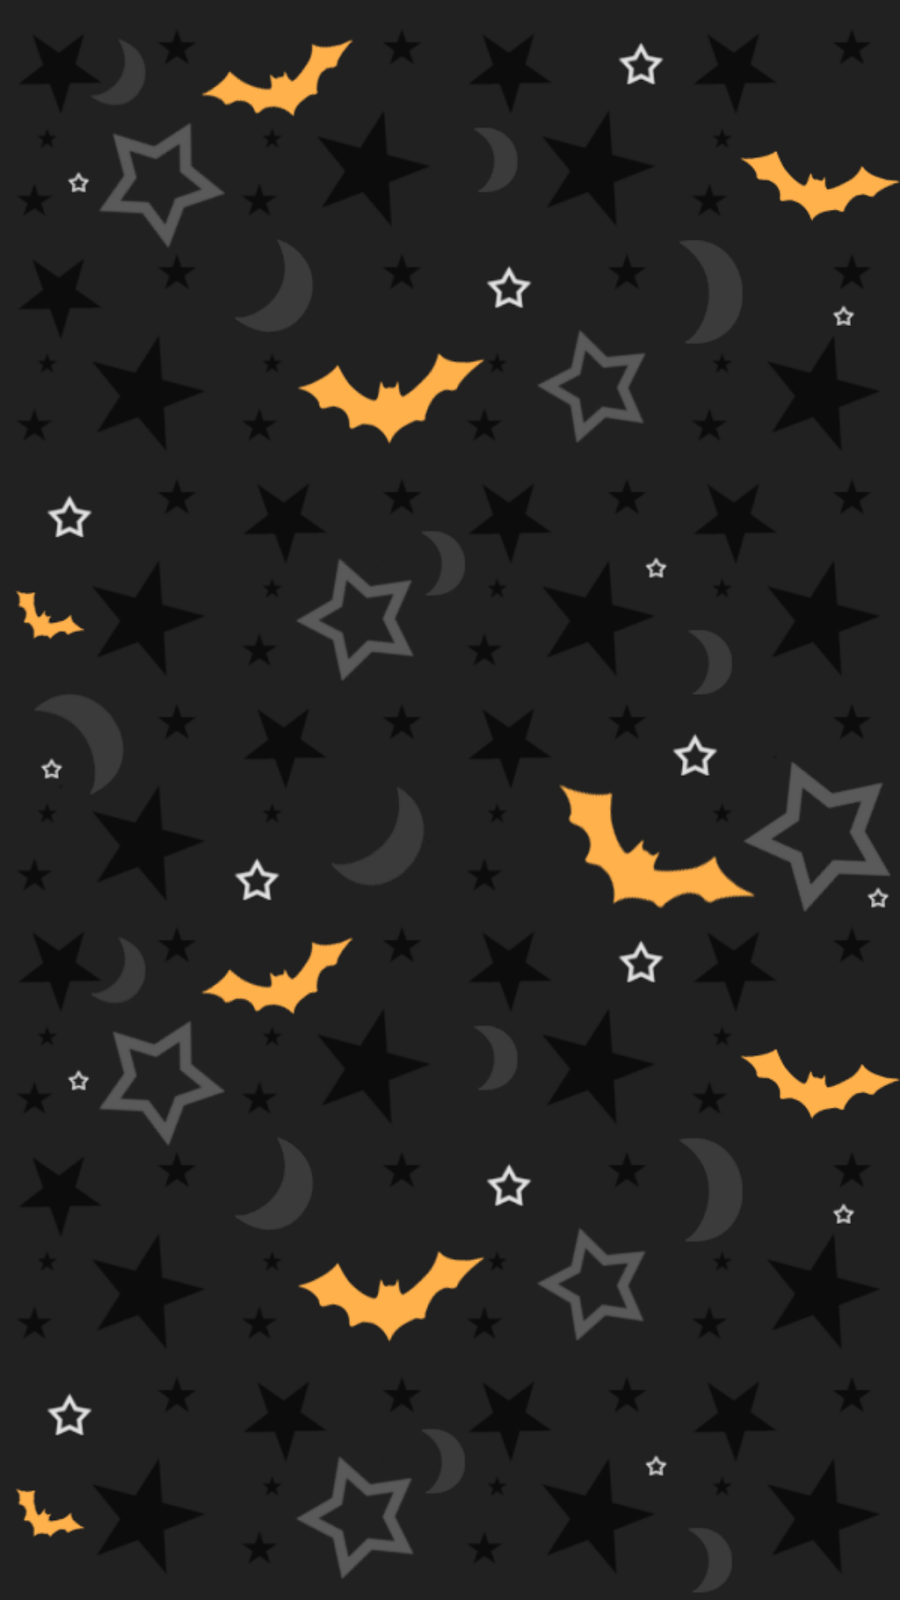 ️LuvNote2 tjn Halloween wallpaper iphone, Halloween